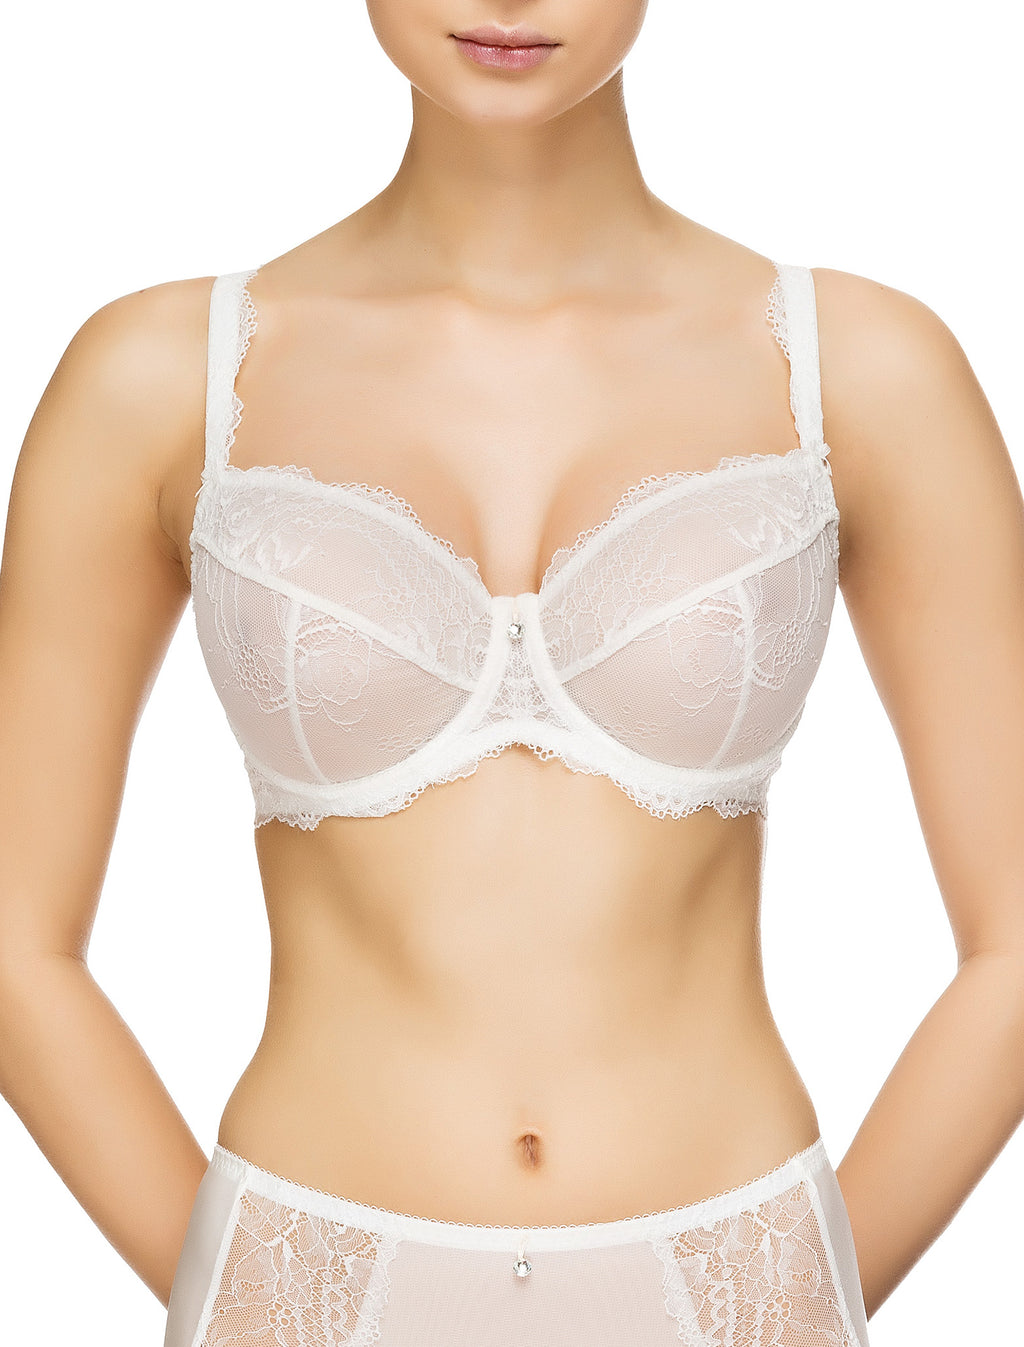 Lauma, Ivory Non-padded Lace Bra, On Model Front, 54G20